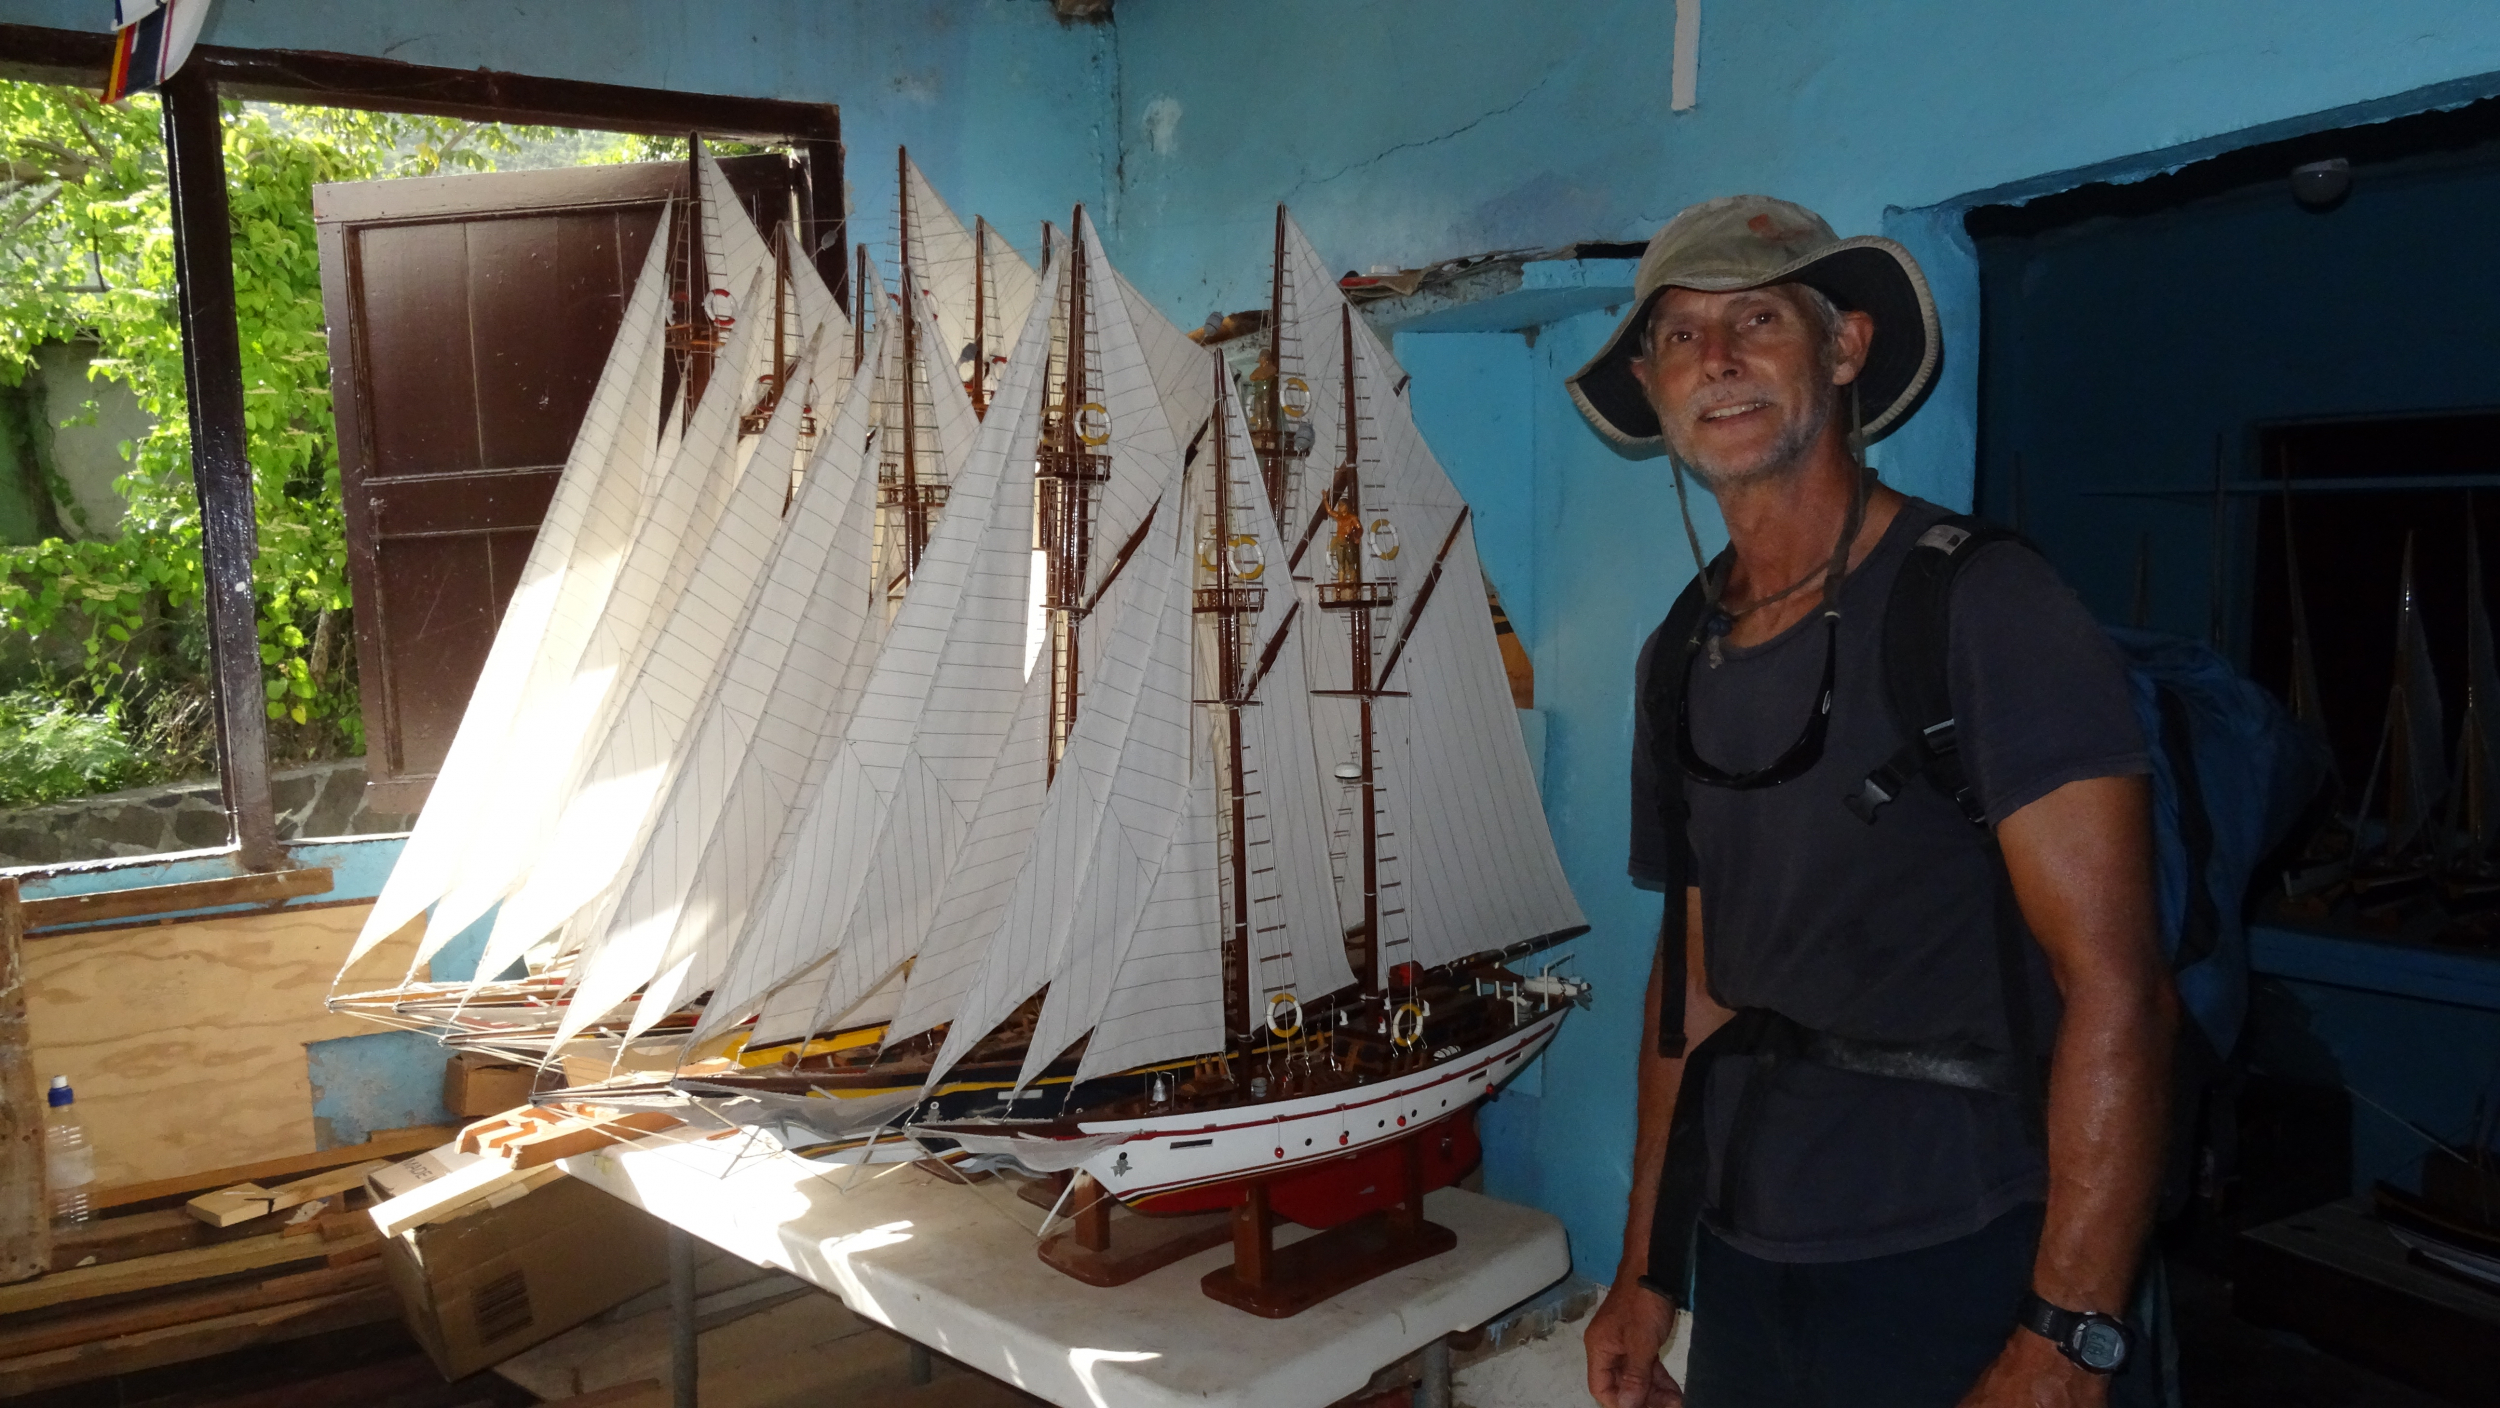 5. Bequia is known for its model boats